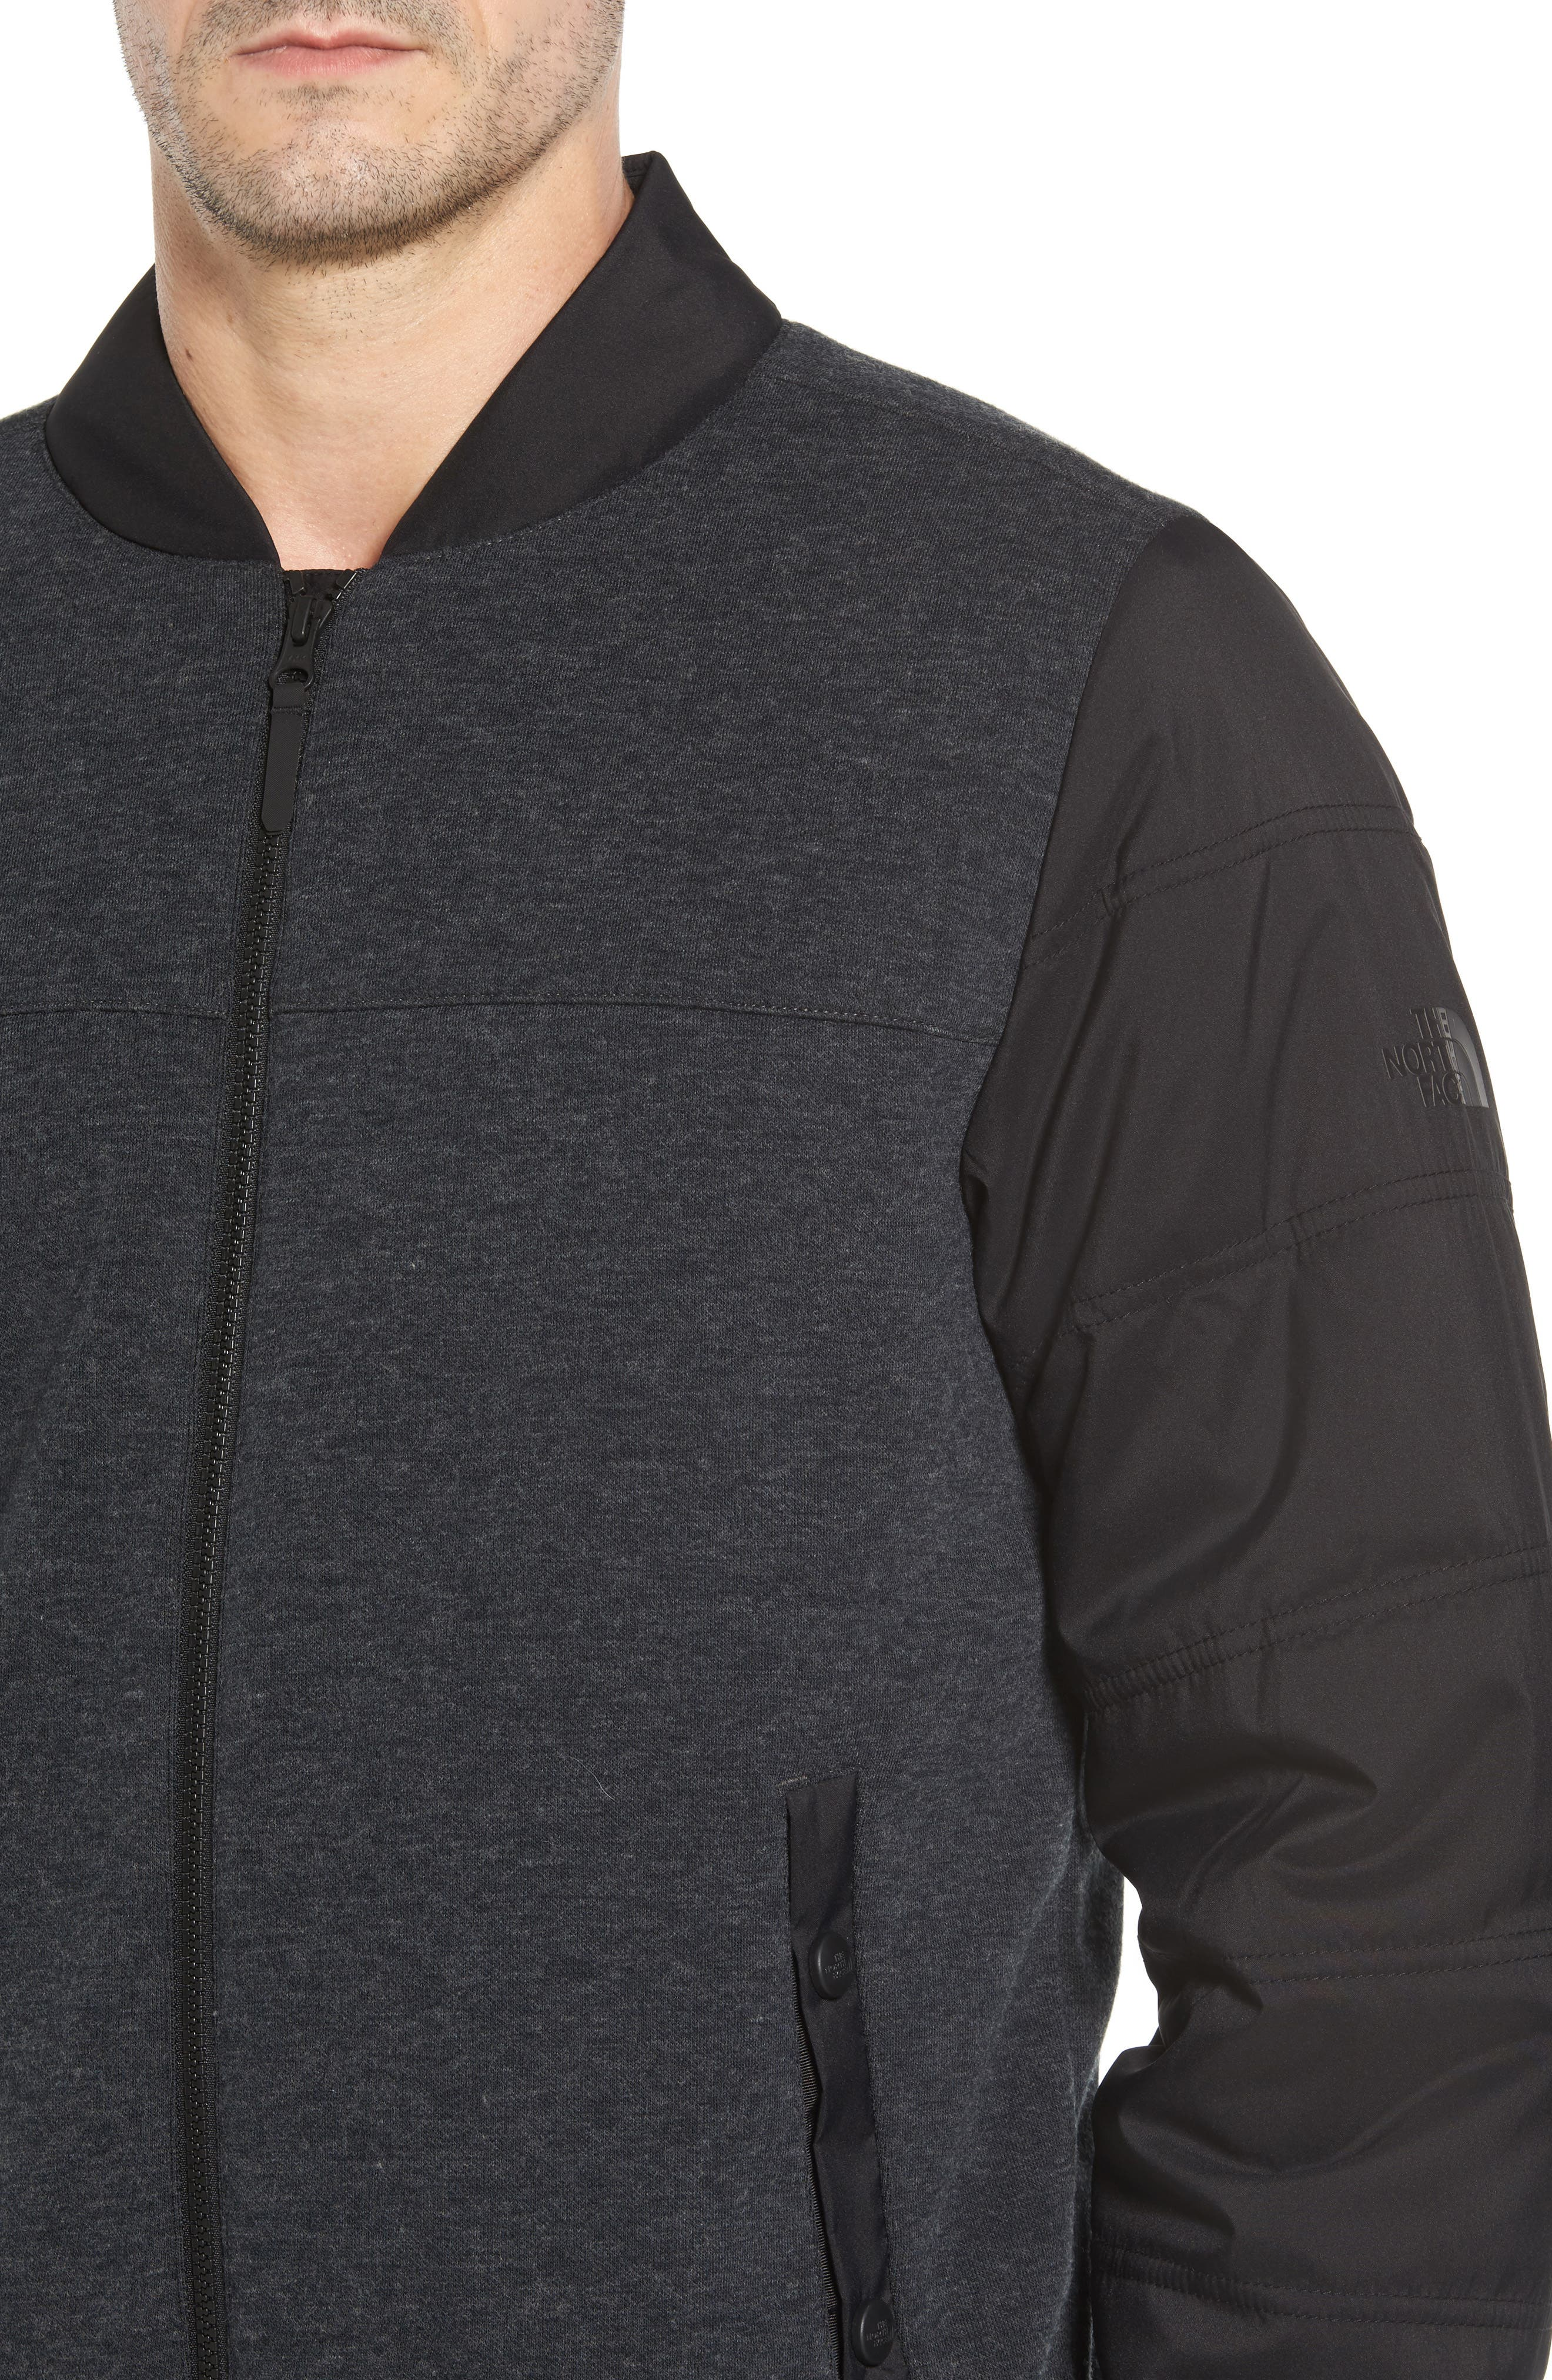 Far Northern Hybrid Bomber Jacket,                             Alternate thumbnail 4, color,                             DARK GREY HEATHER/ BLACK